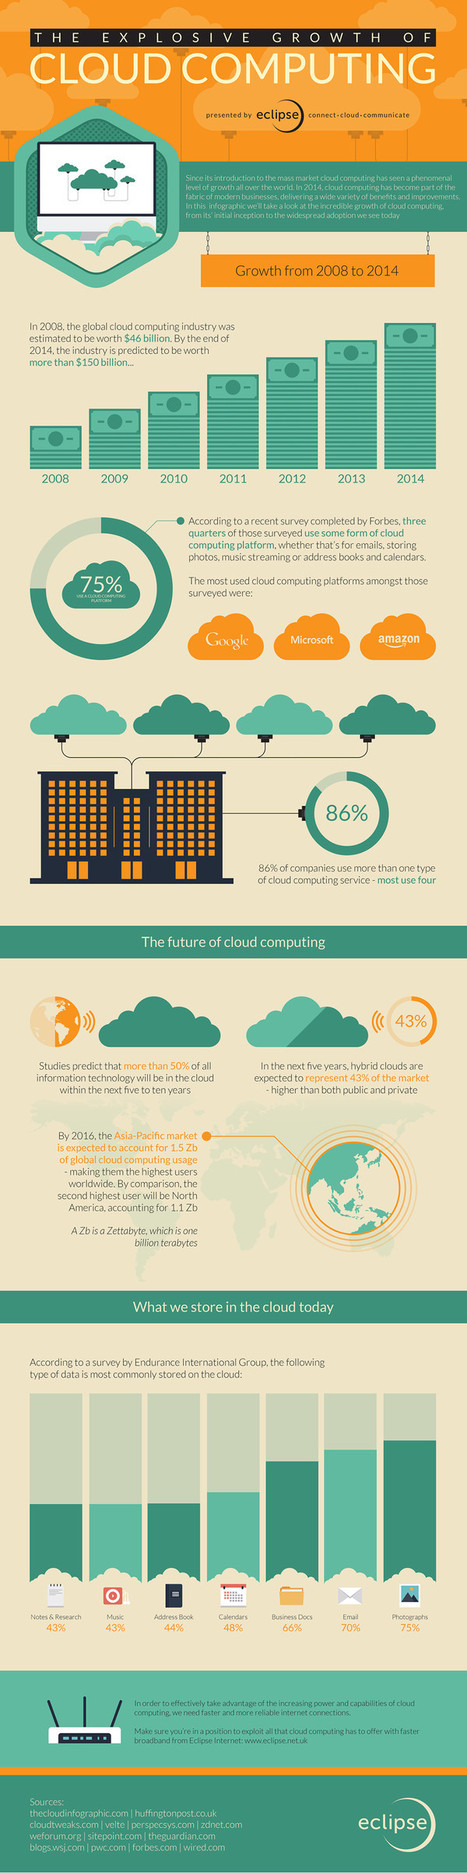 The Explosive Growth of Cloud Computing | digital marketing strategy | Scoop.it